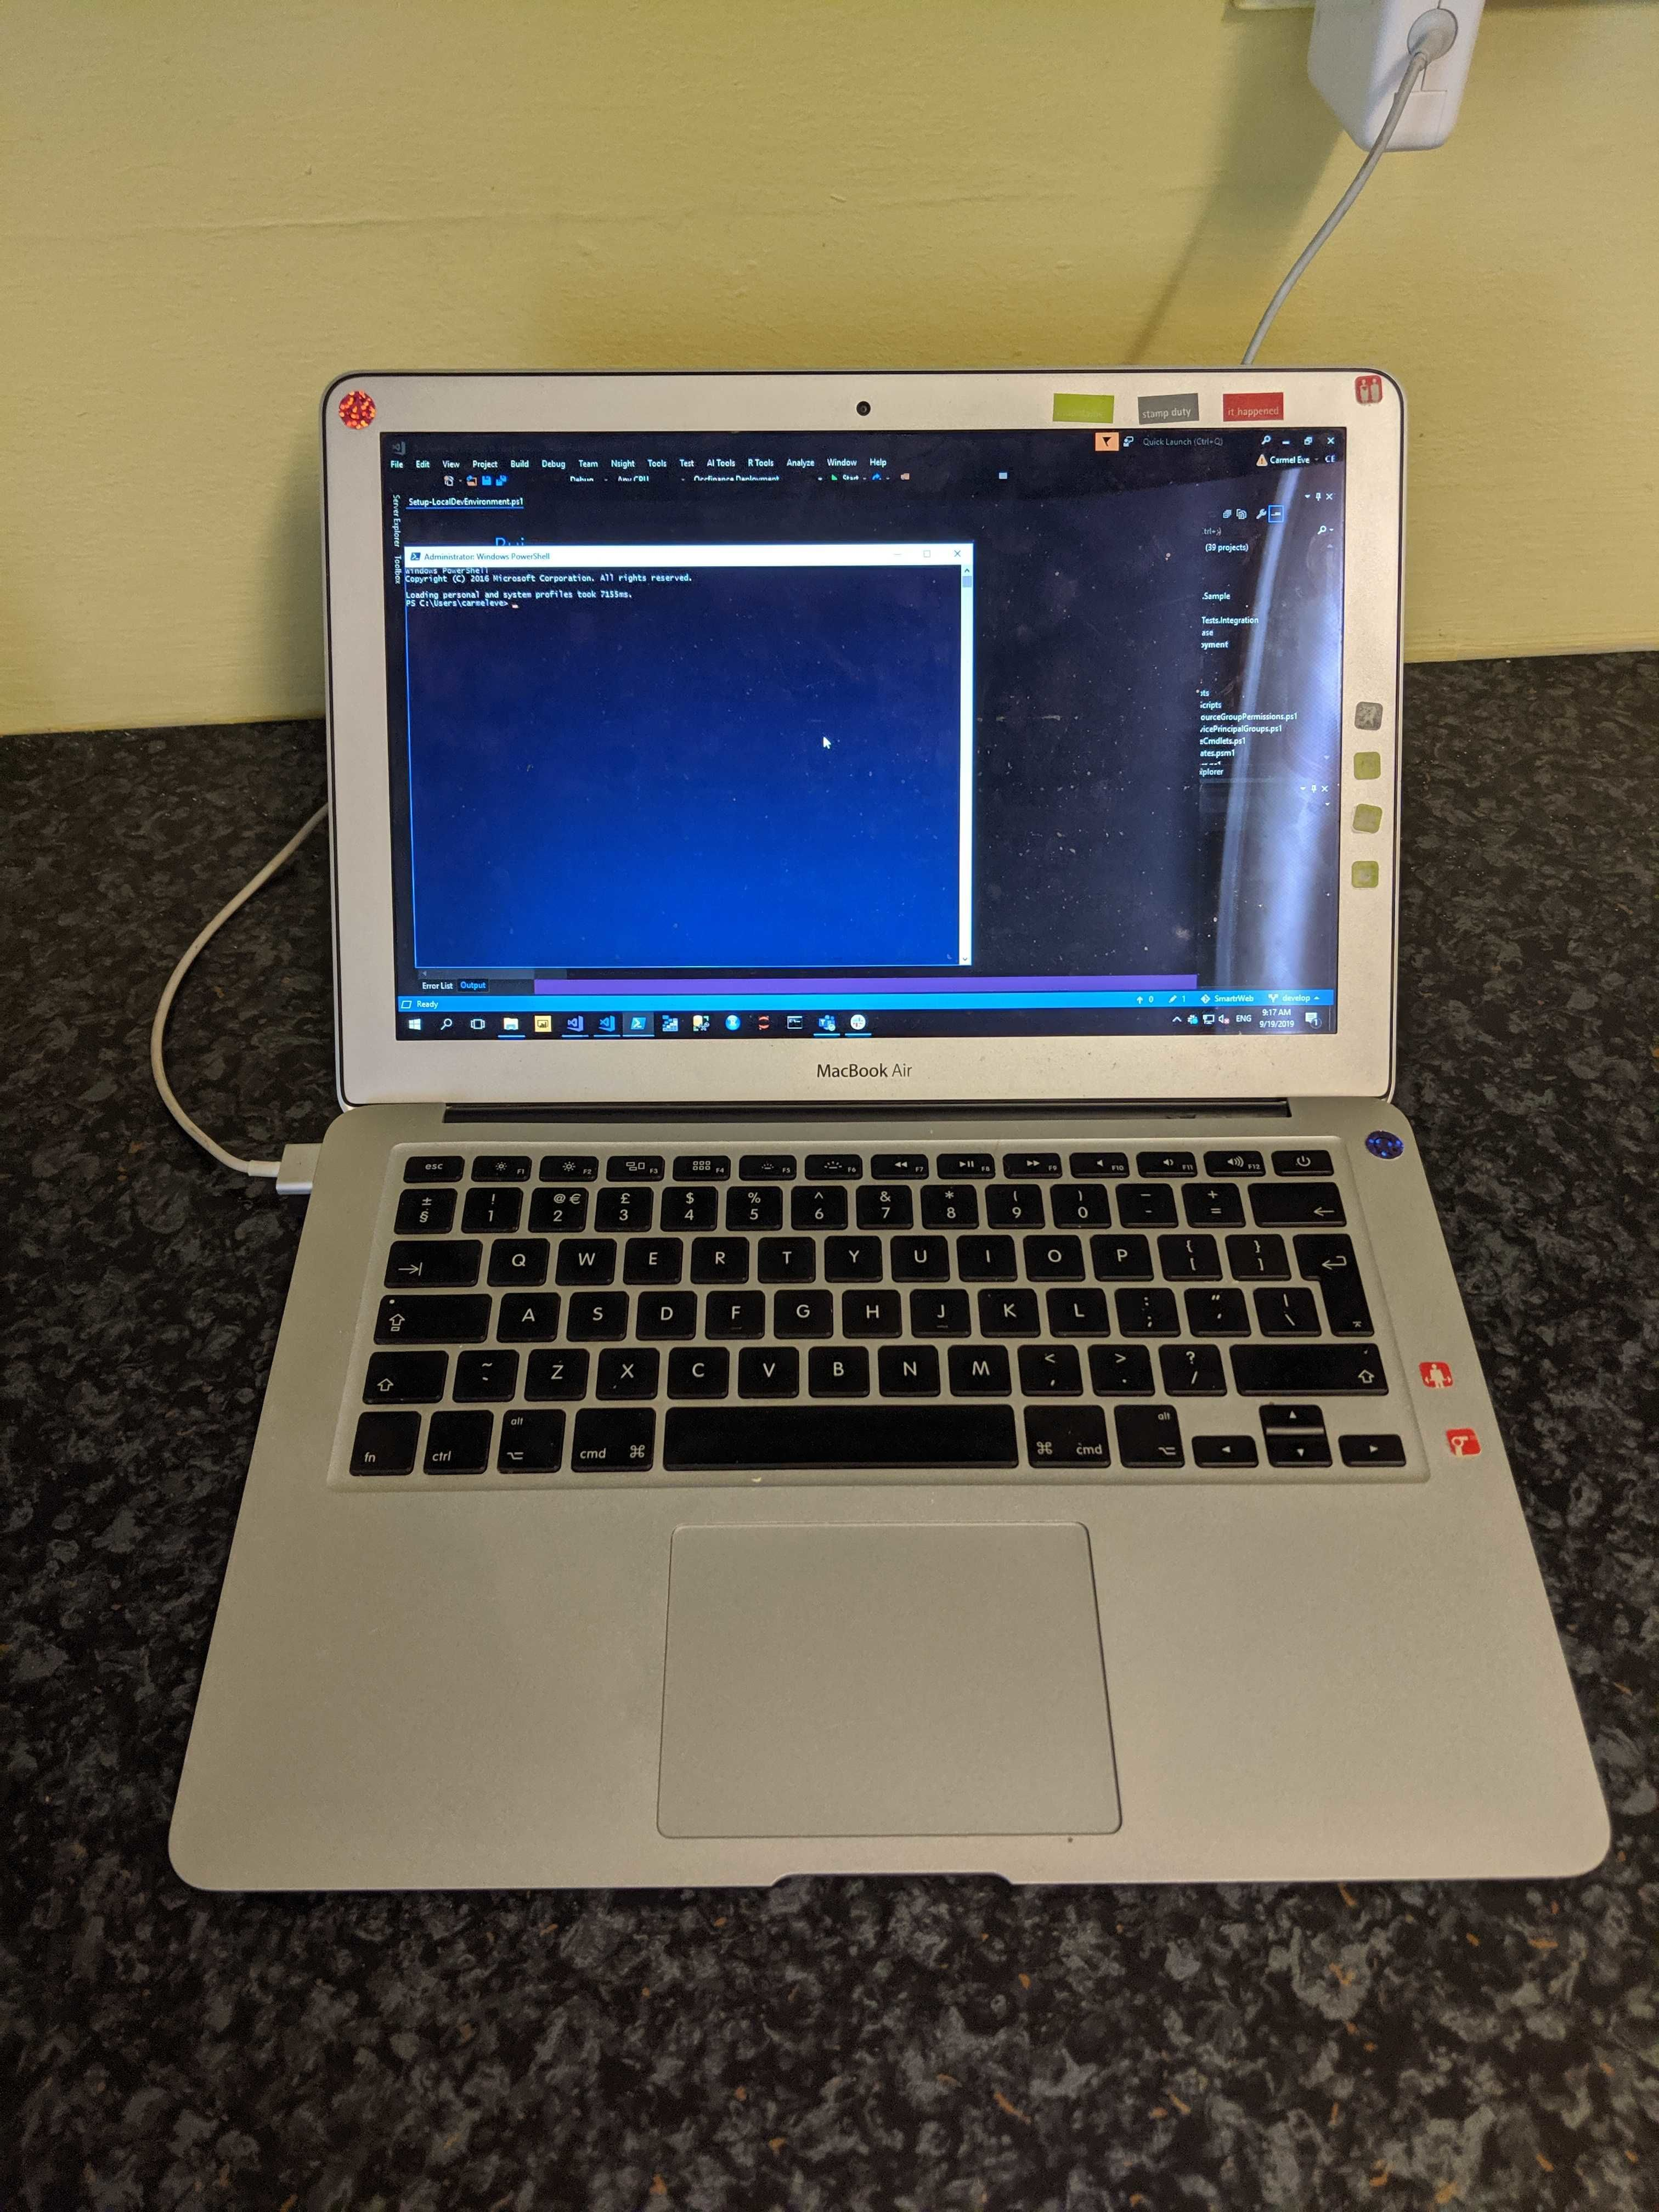 Image of MacBook connected to VM.